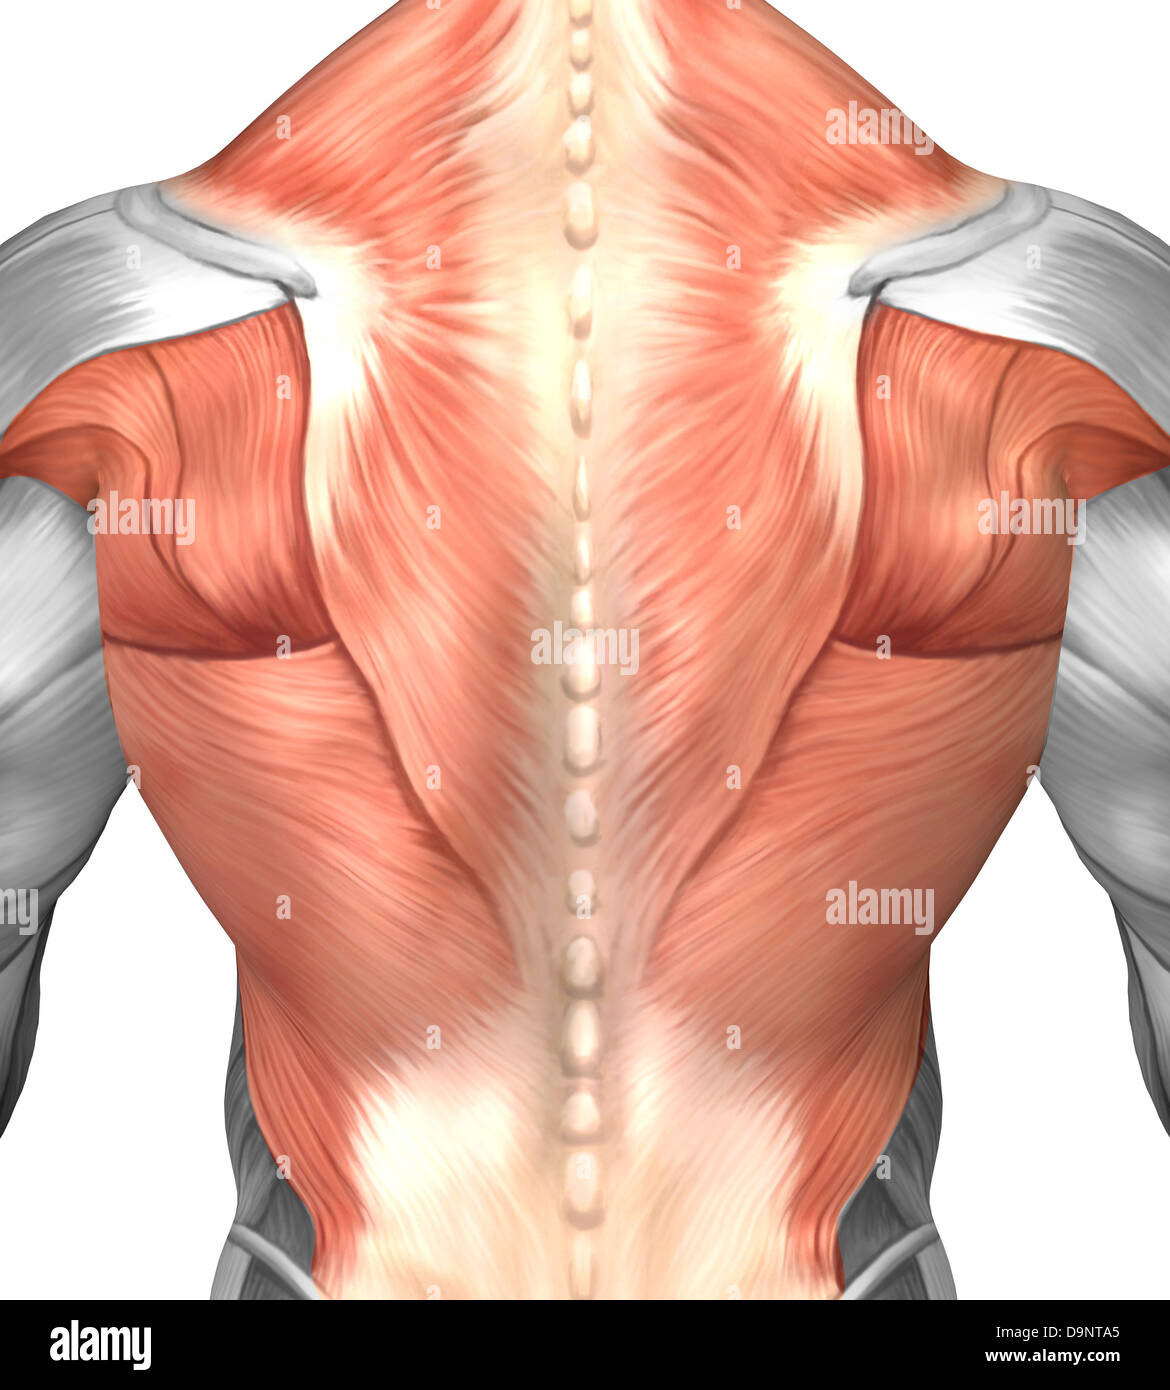 Spine Muscles Stock Photos & Spine Muscles Stock Images - Alamy